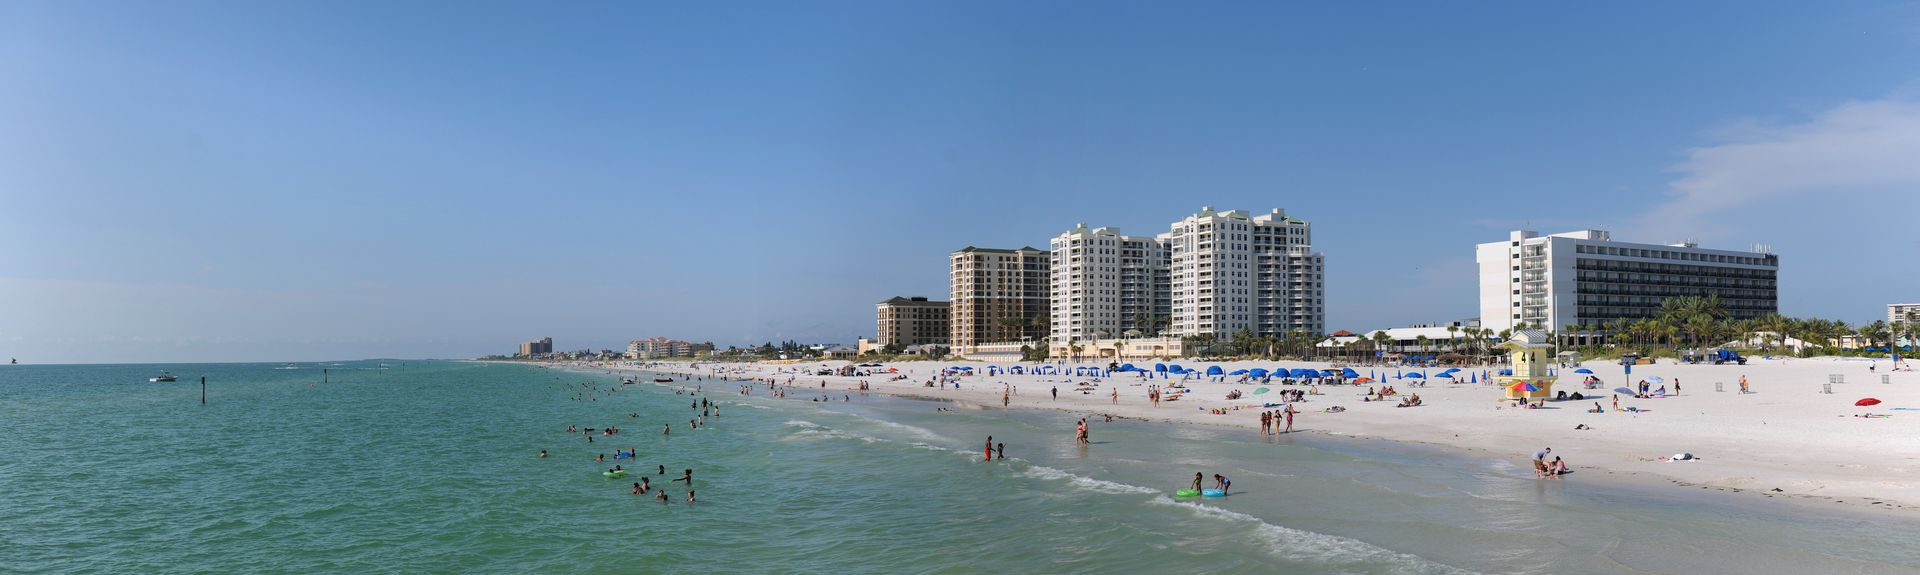 Clearwater Beach, Clearwater Vacation Rentals: house rentals & more | Vrbo